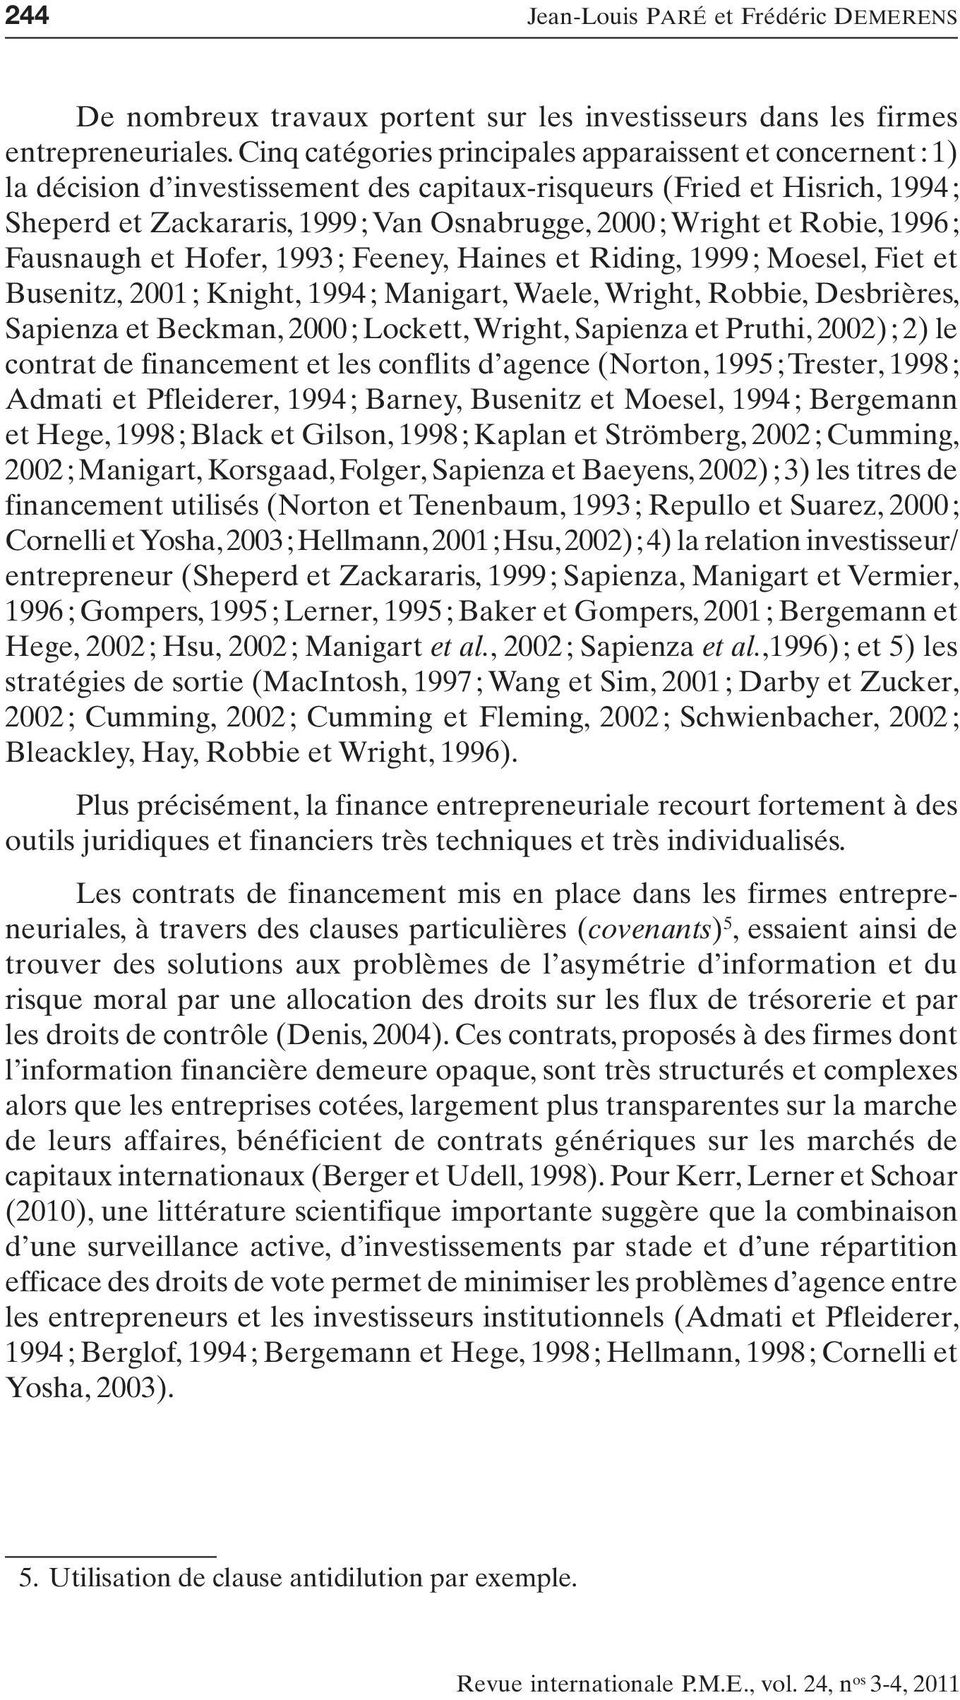 et Robie, 1996 ; Fausnaugh et Hofer, 1993 ; Feeney, Haines et Riding, 1999 ; Moesel, Fiet et Busenitz, 2001 ; Knight, 1994 ; Manigart, Waele, Wright, Robbie, Desbrières, Sapienza et Beckman, 2000 ;